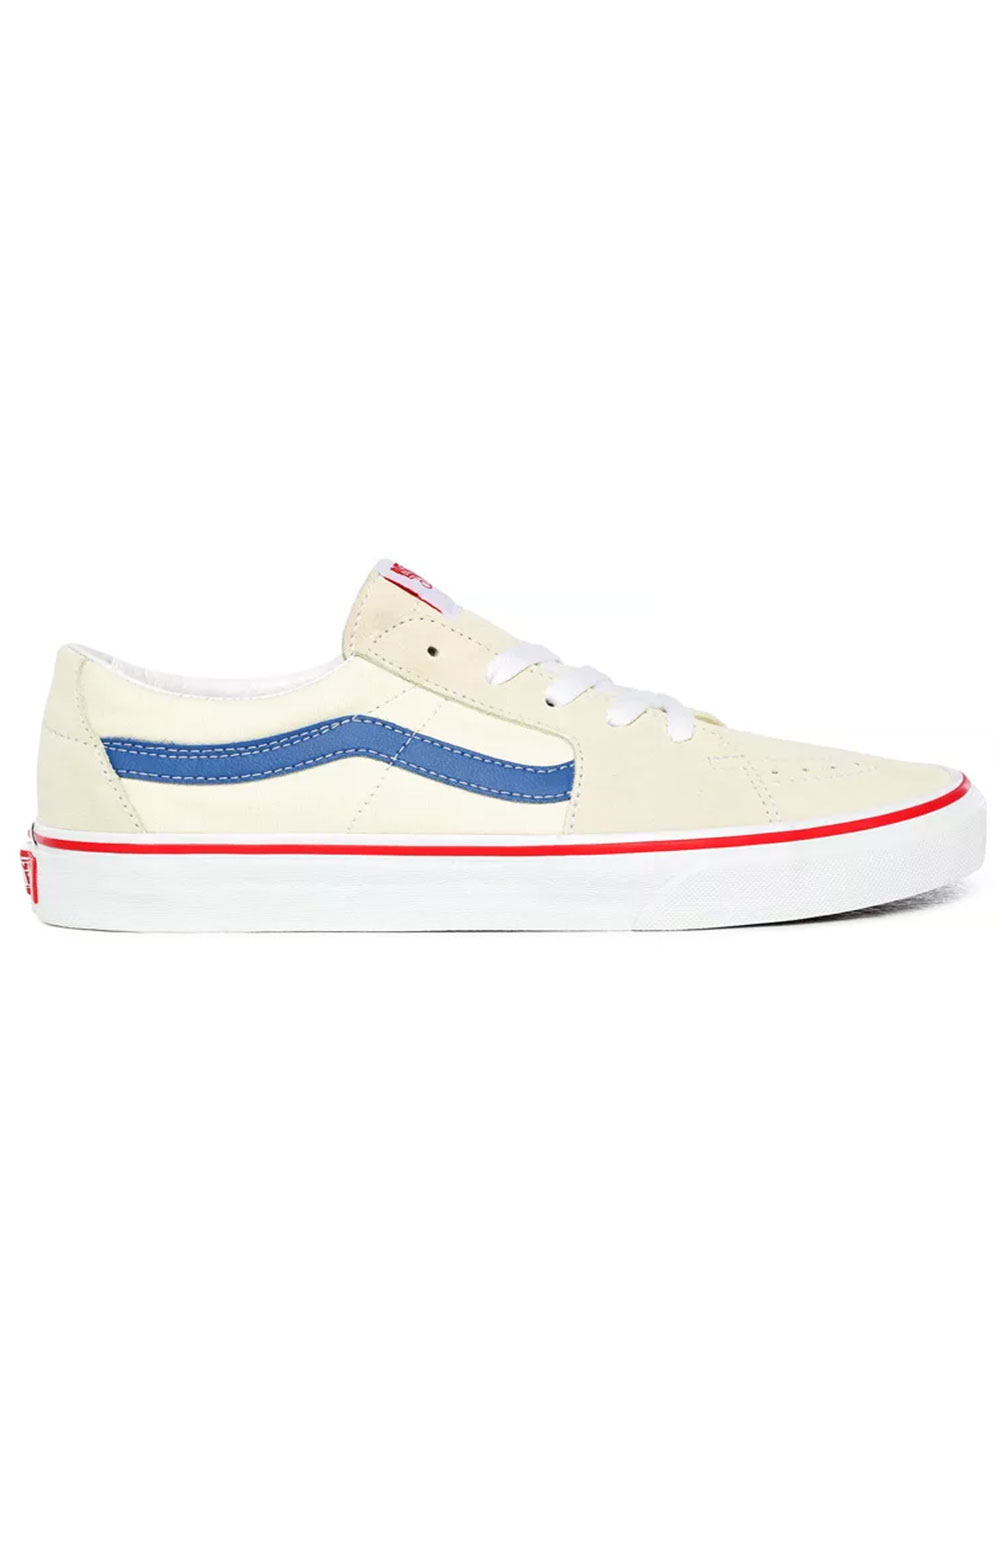 (UUK24I) Sk8-Low Shoes - Classic White/Navy